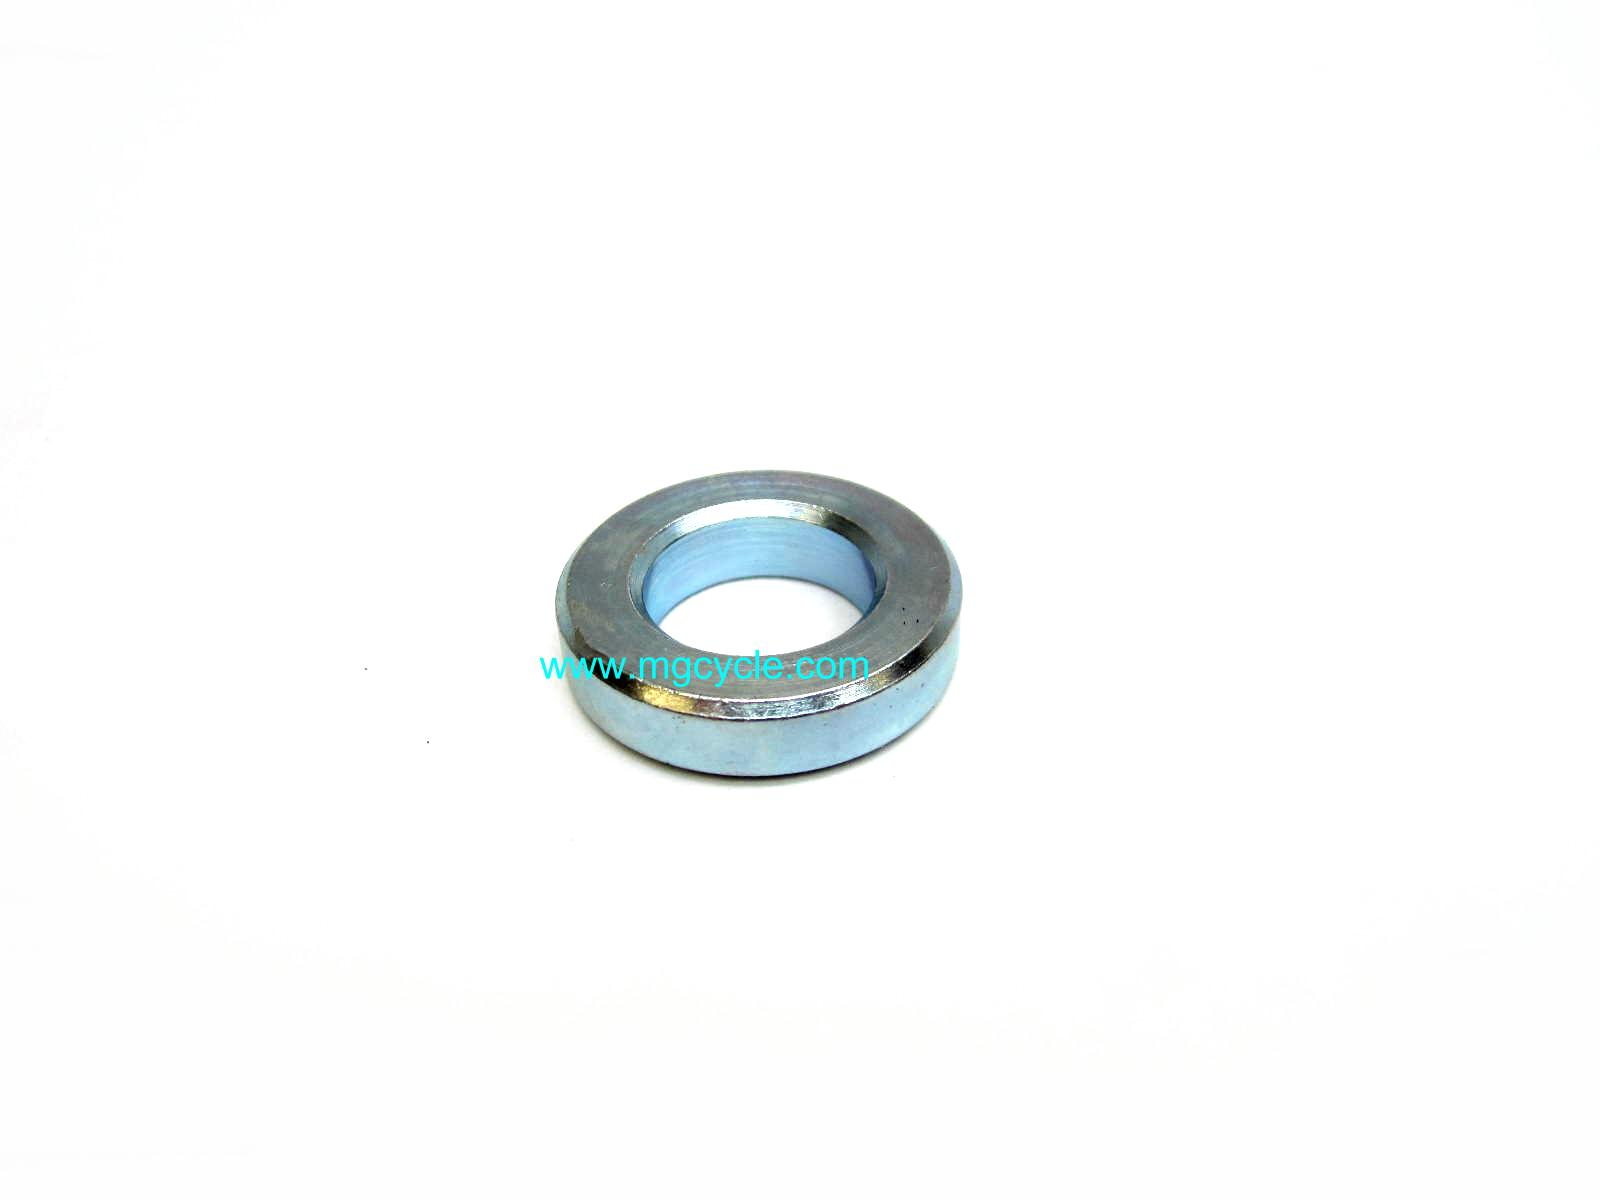 Spacer, swingarm pivot bearing 1967-2002 GU12547200